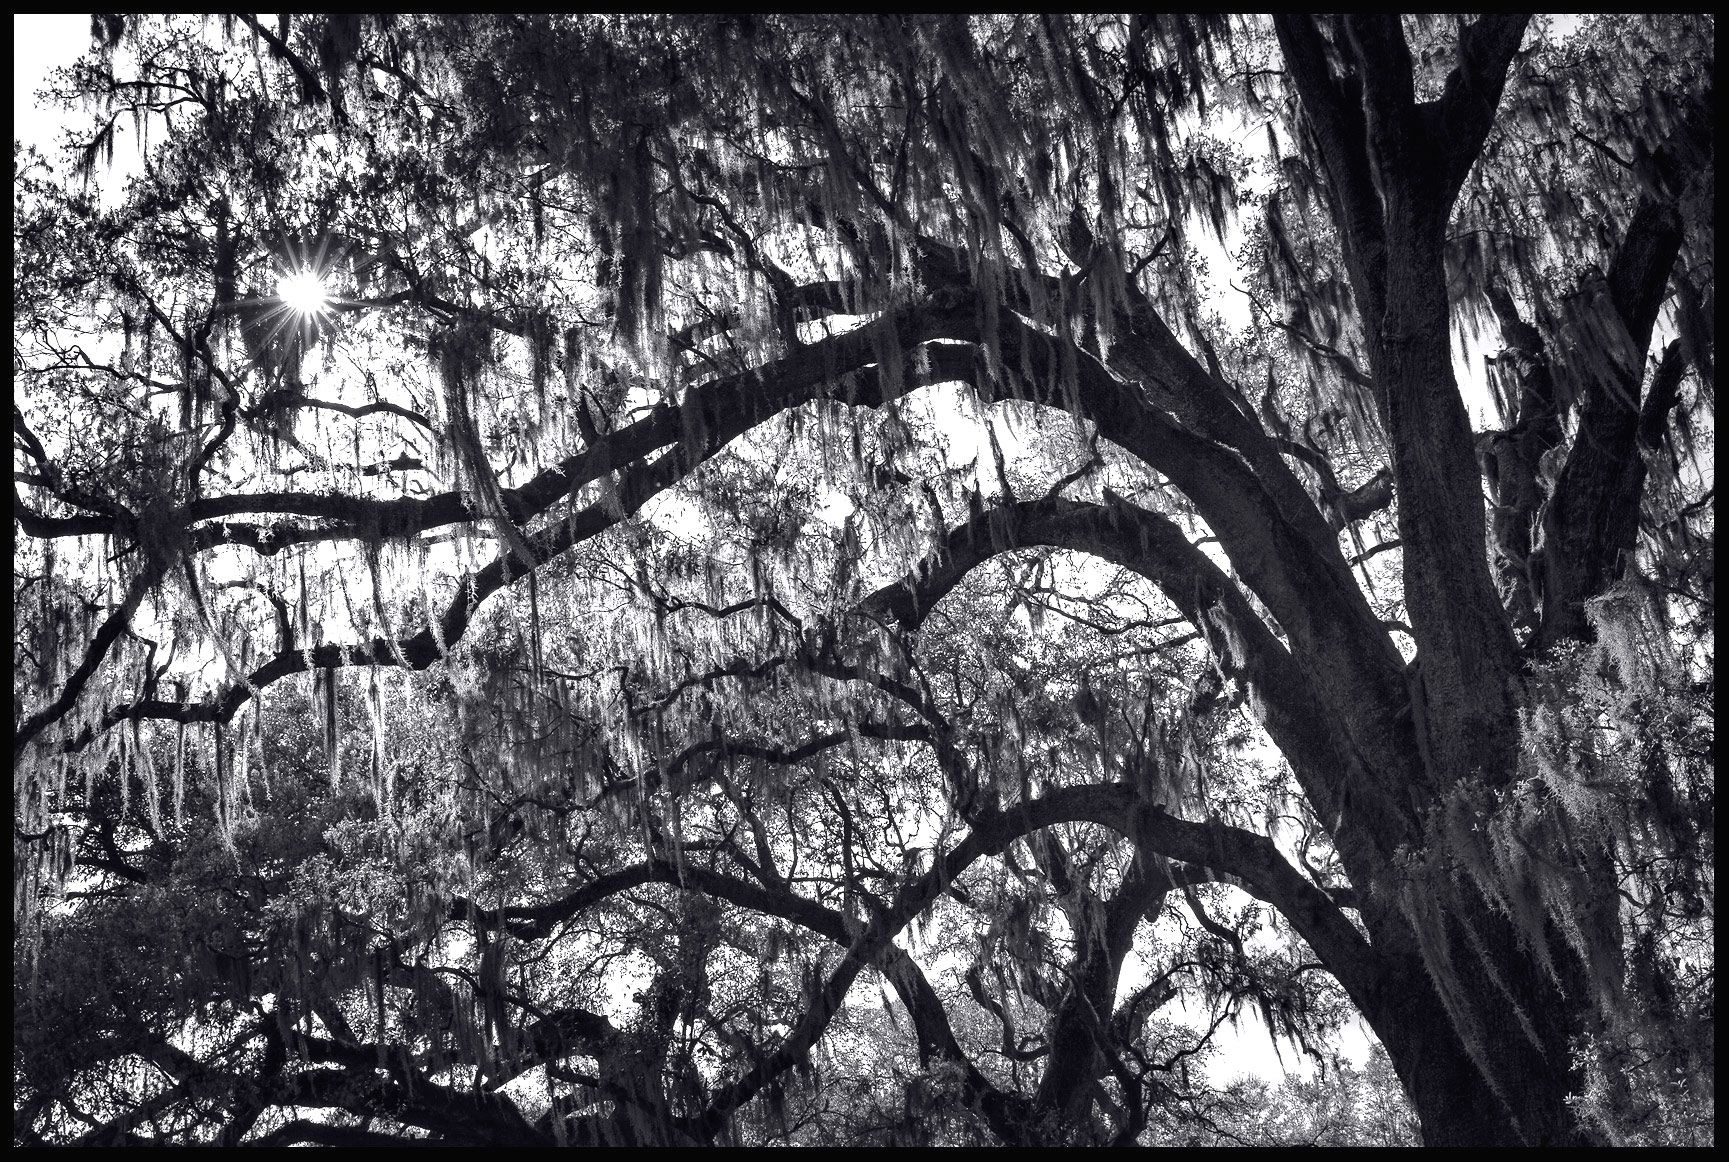 Live Oak with Spanish Moss - Audubon Park, - New Orleans, LA